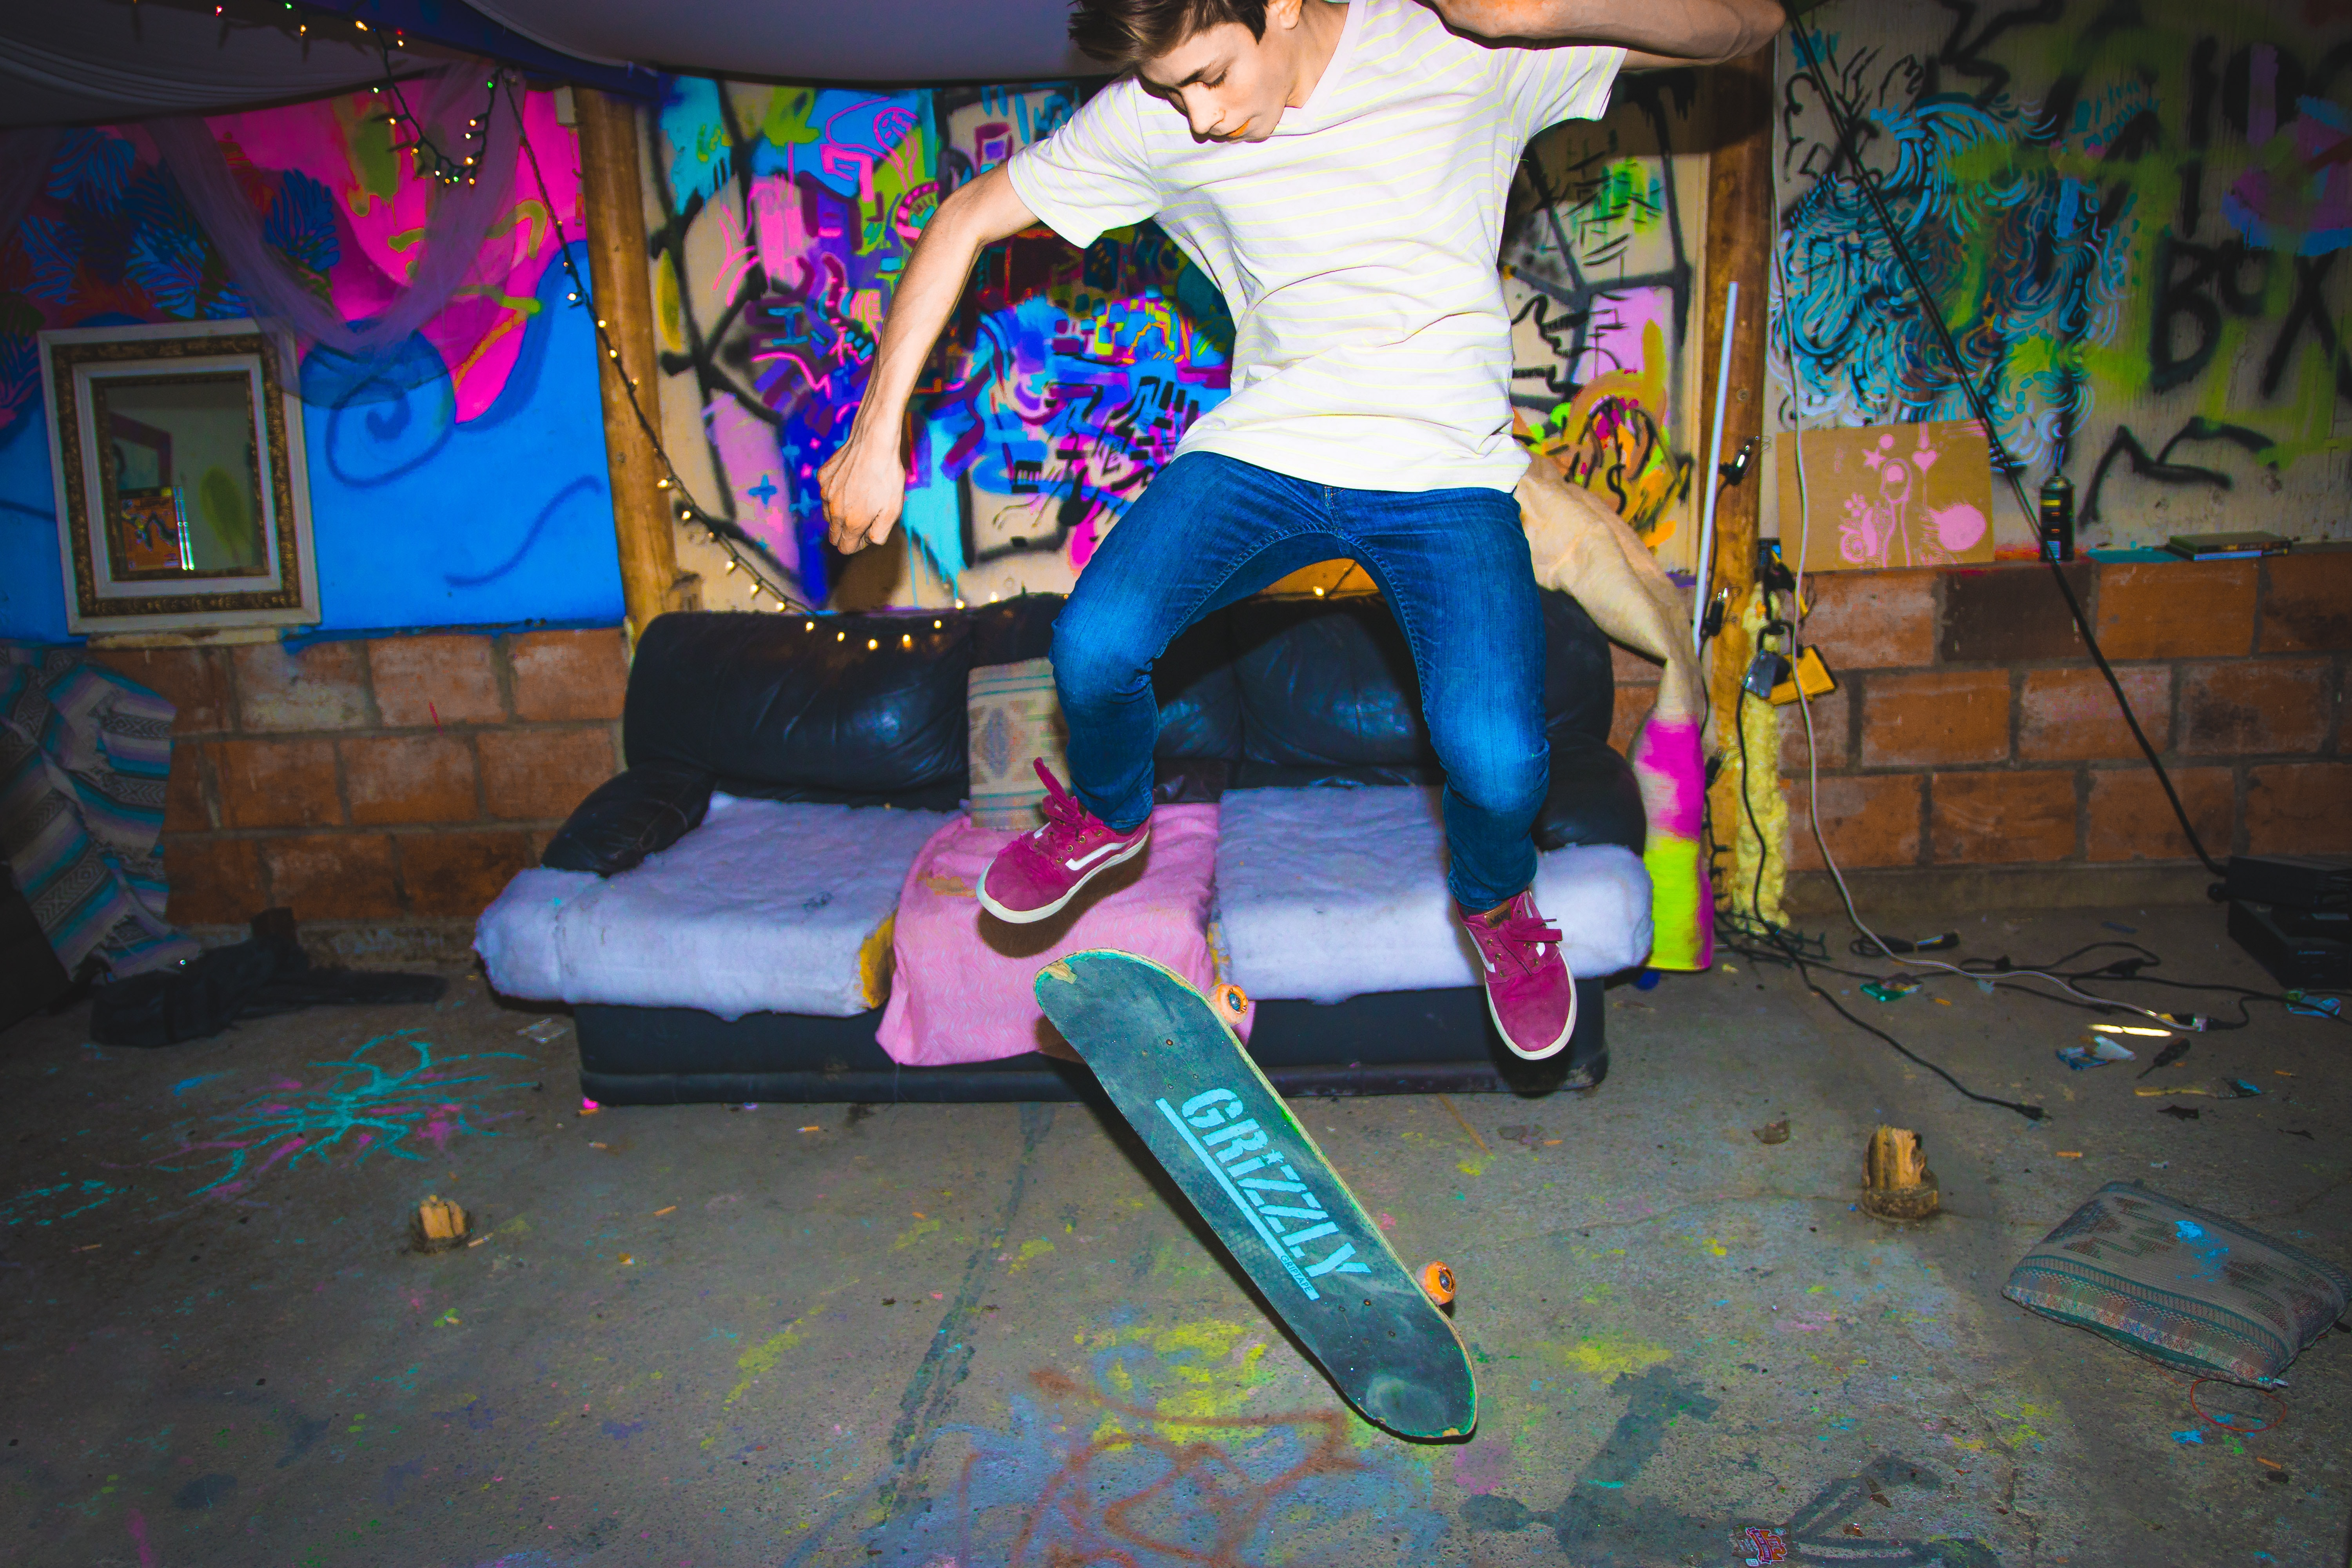 A skateboarder does a trick in front of a couch and neon graffitied wall